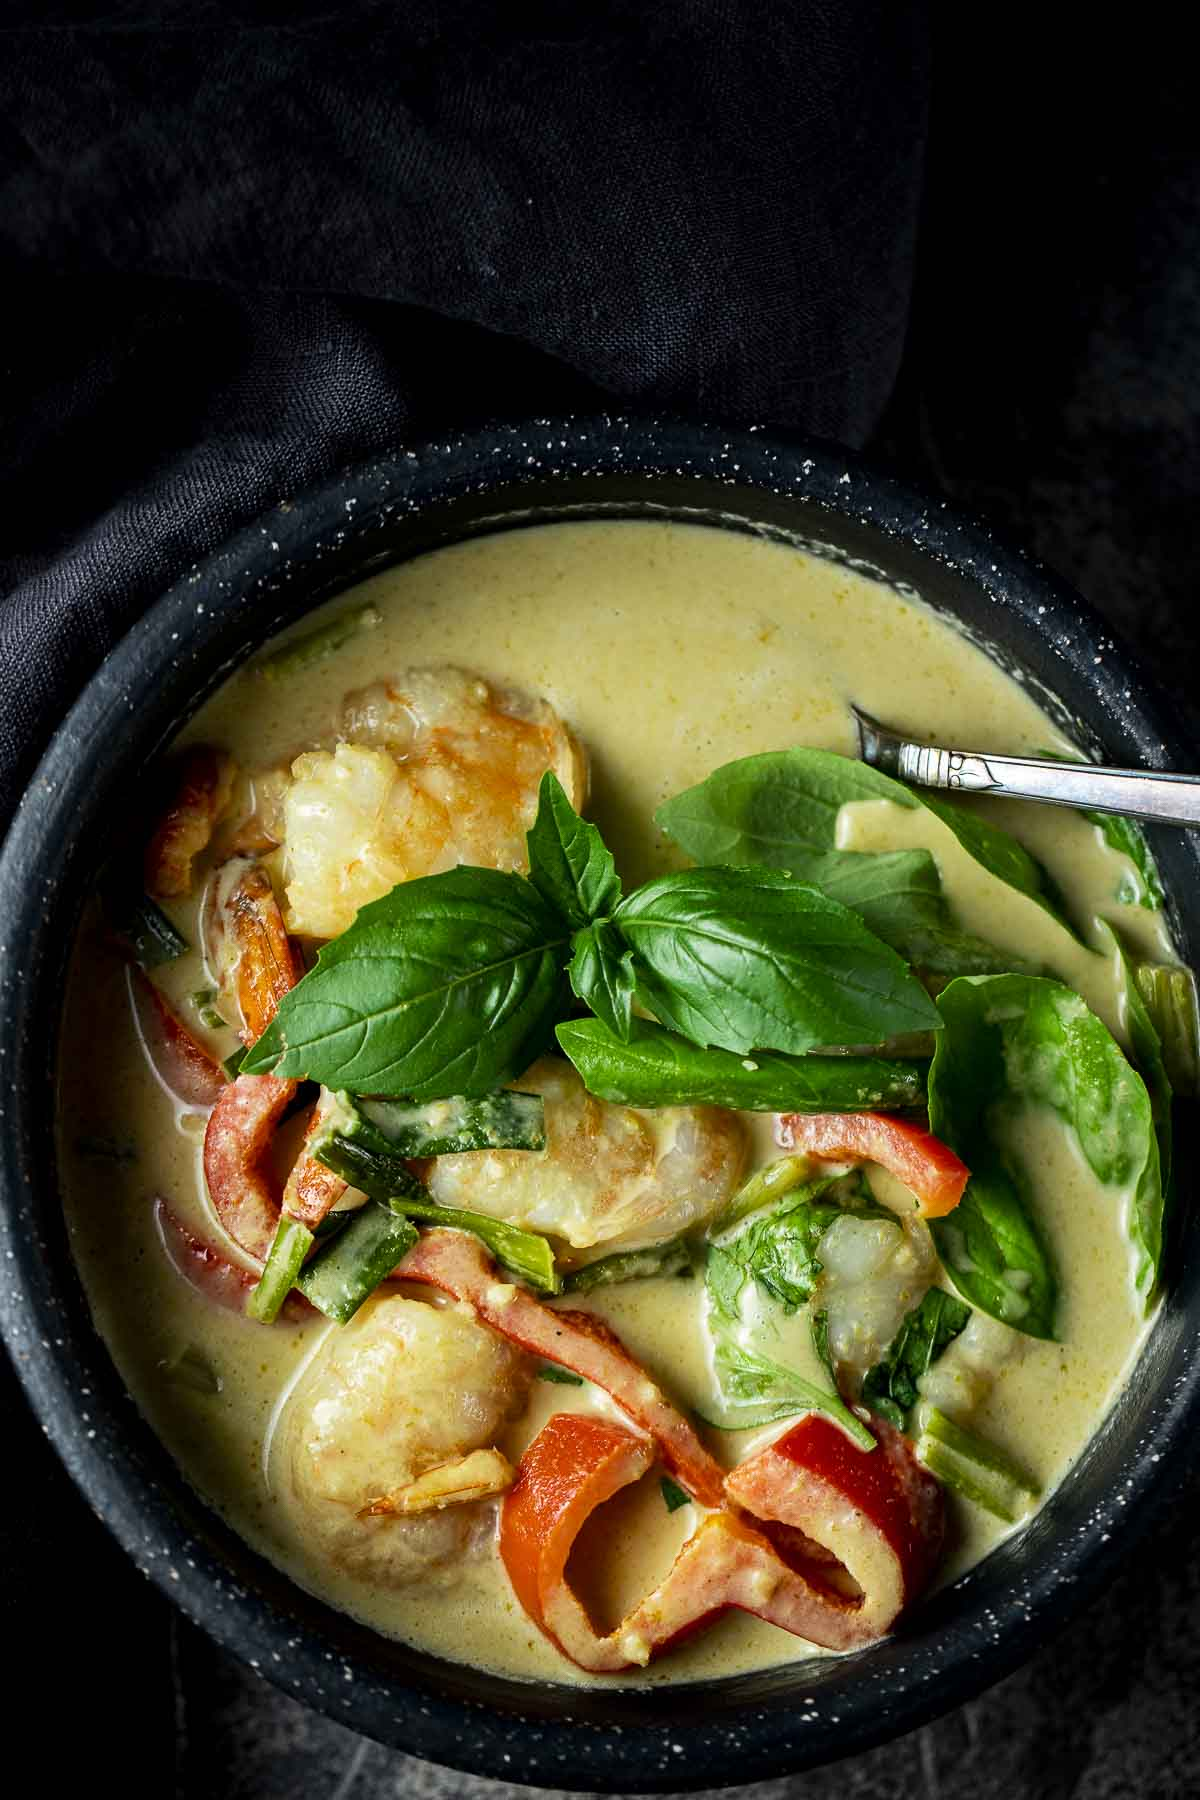 green curry with fresh basil leaves, shrimp and red peppers in a bowl